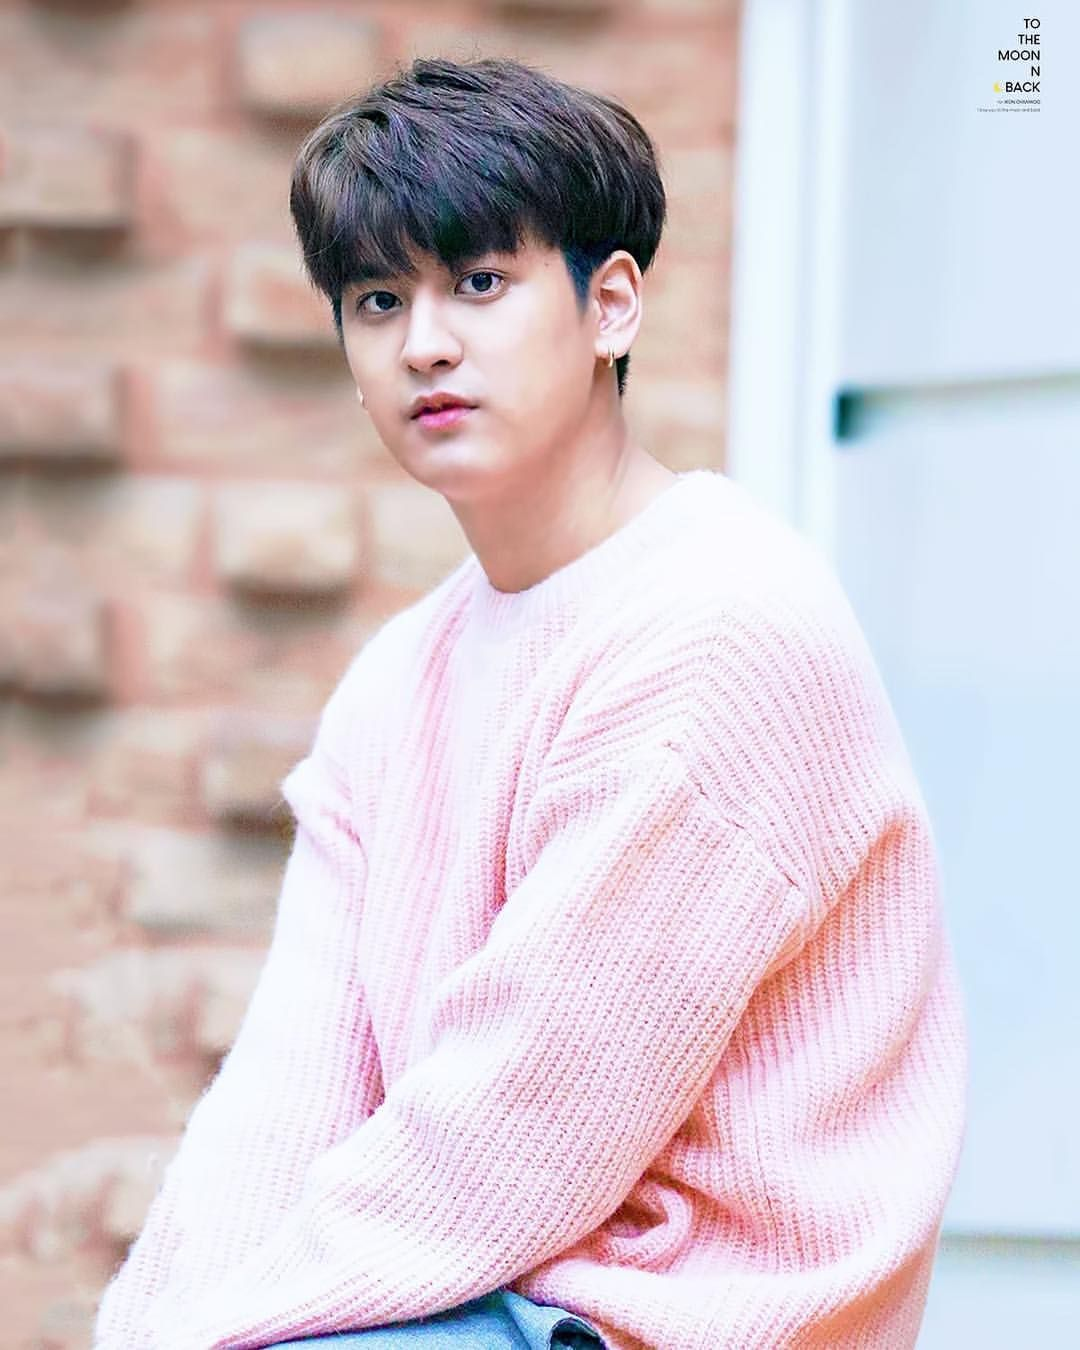 jung chanwoo images chanwoo hd wallpaper and background photos